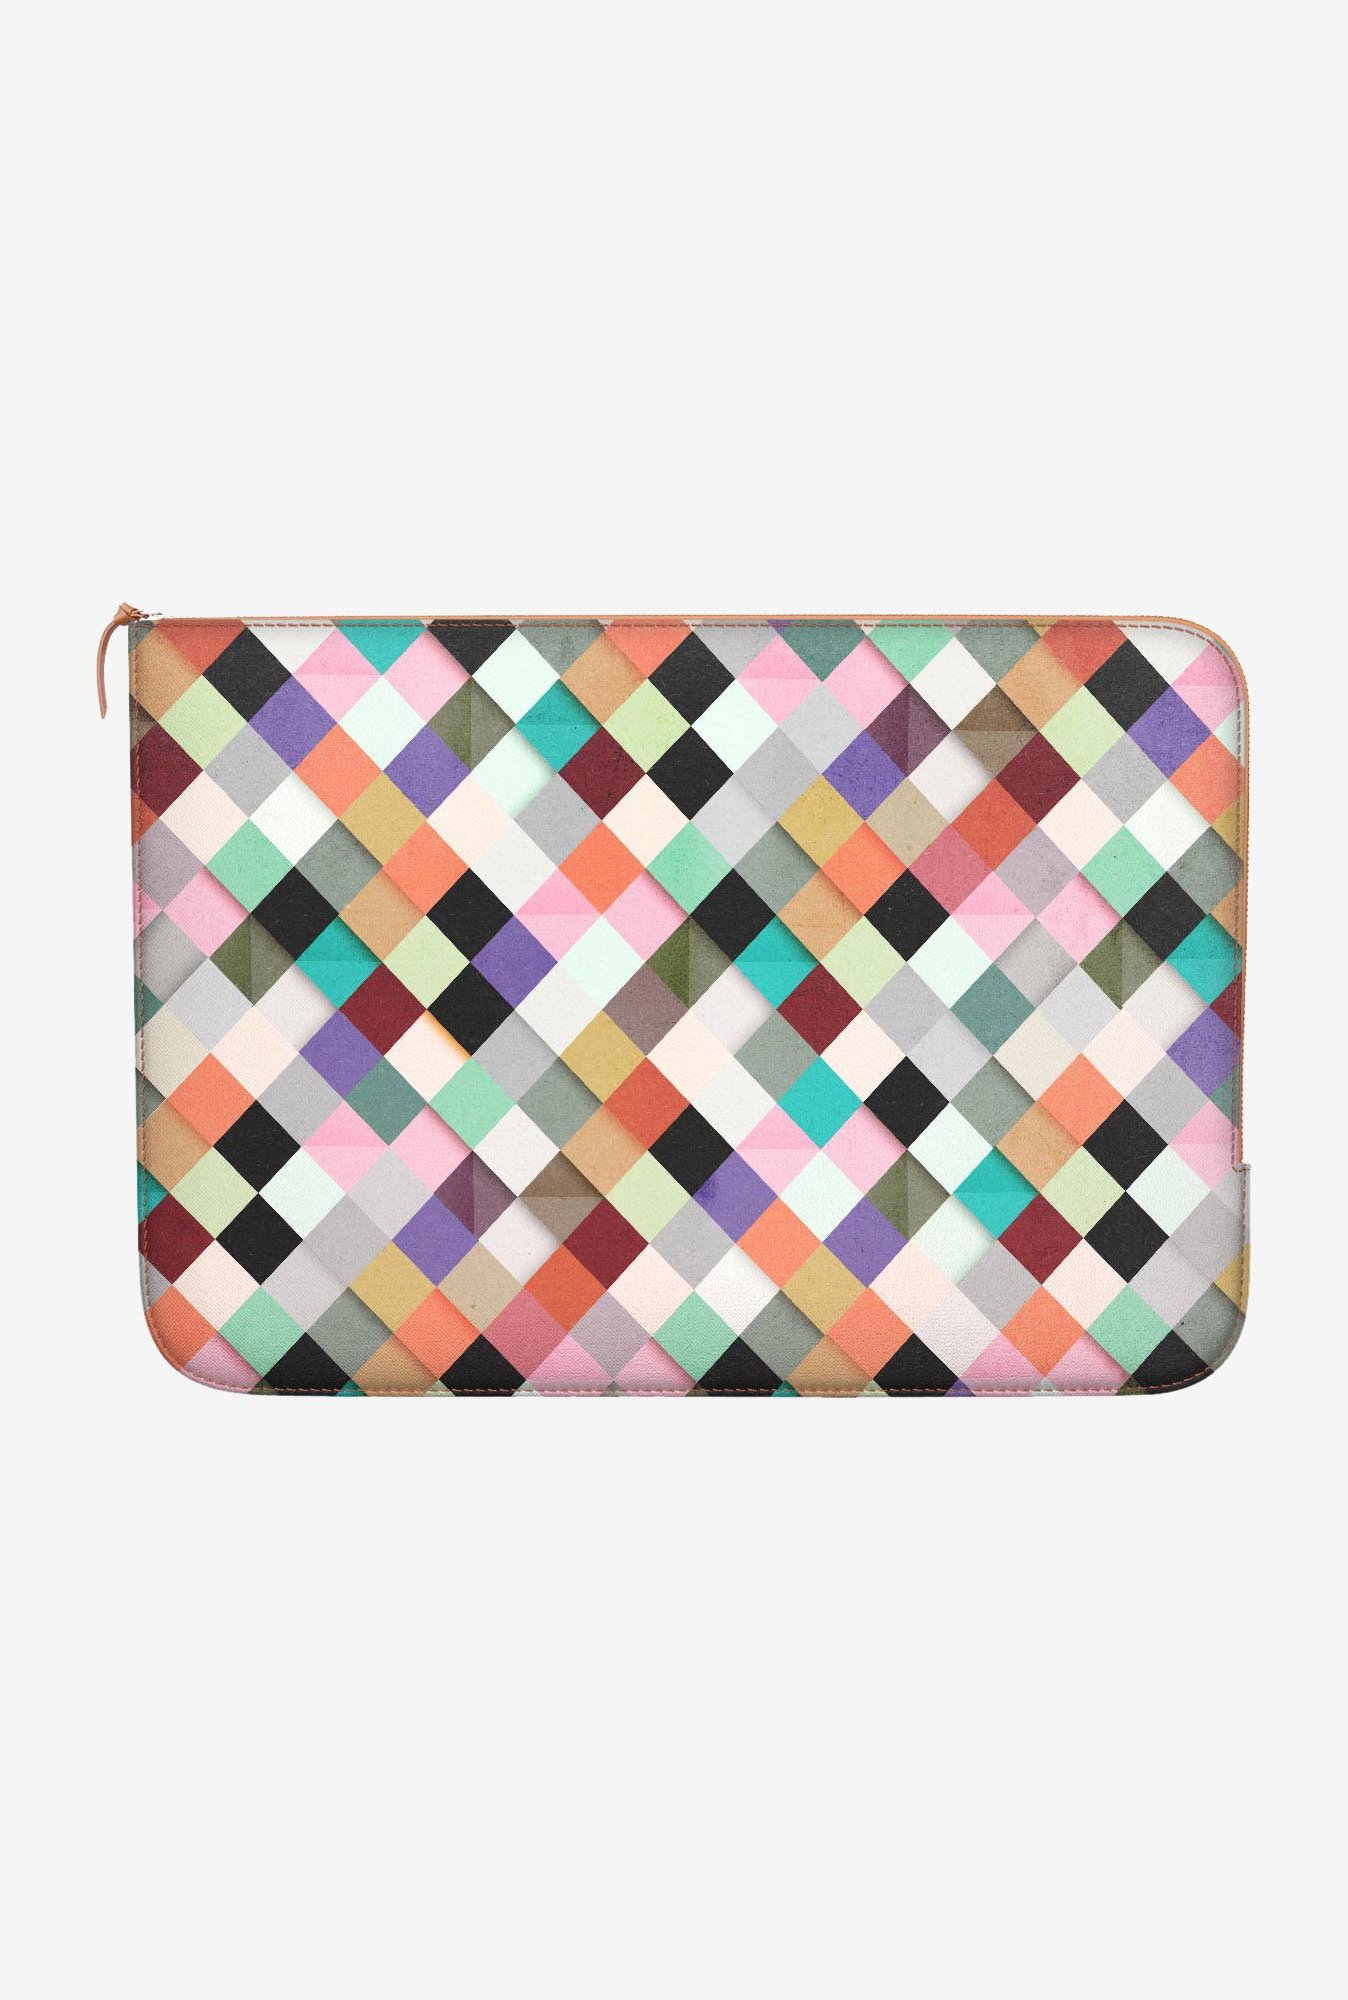 DailyObjects Pastels MacBook Air 11 Zippered Sleeve